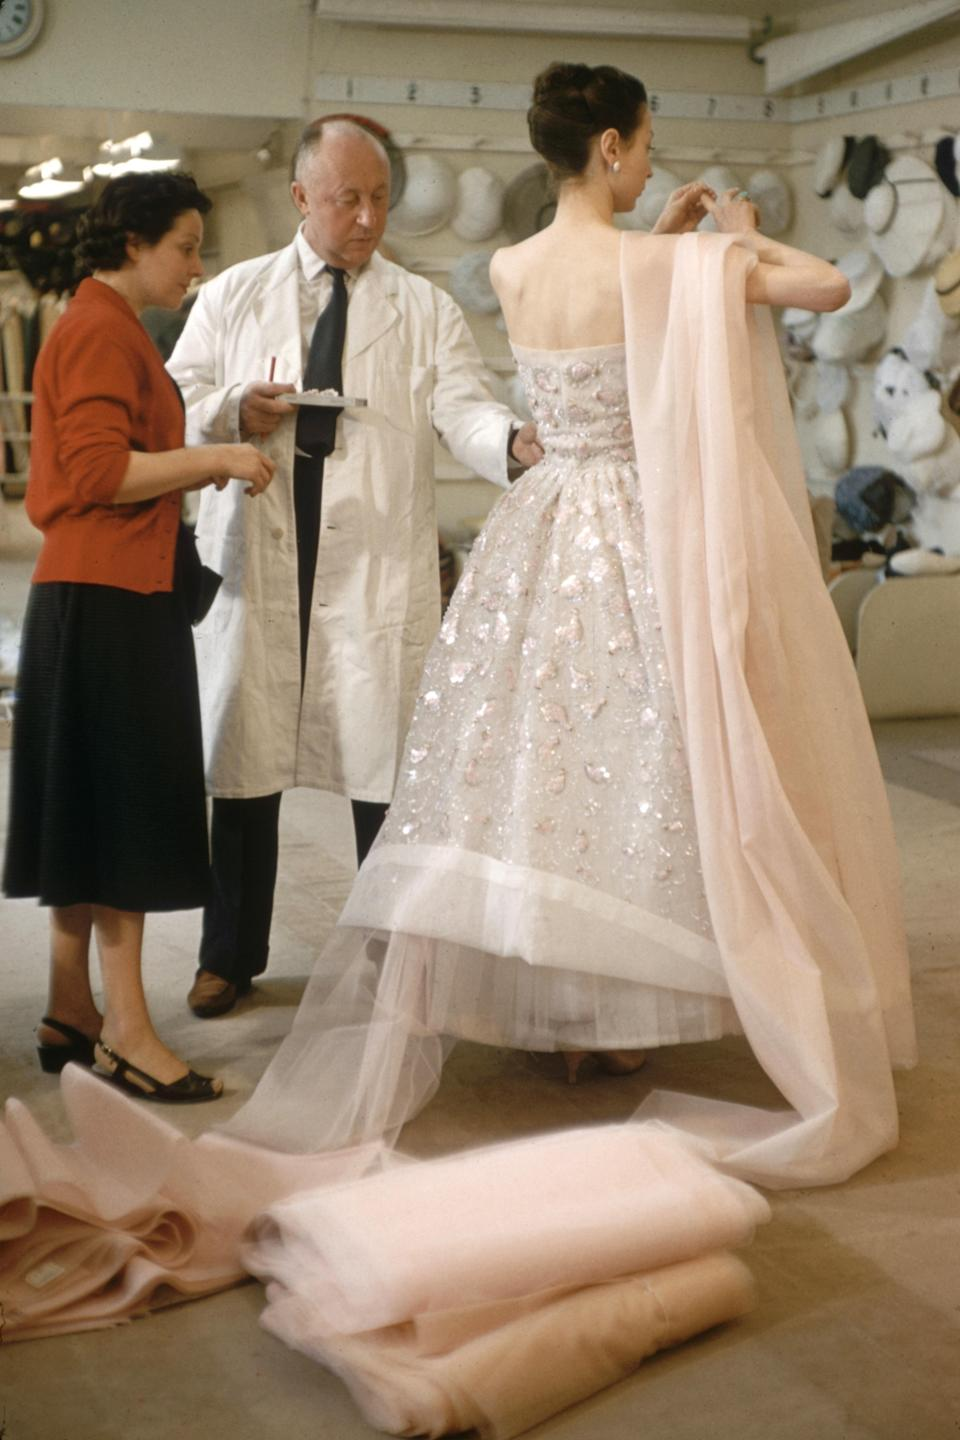 French fashion designer Christian Dior adjusts the dress on a model in his Paris salon, as part of preparations for his 1957 spring collection.